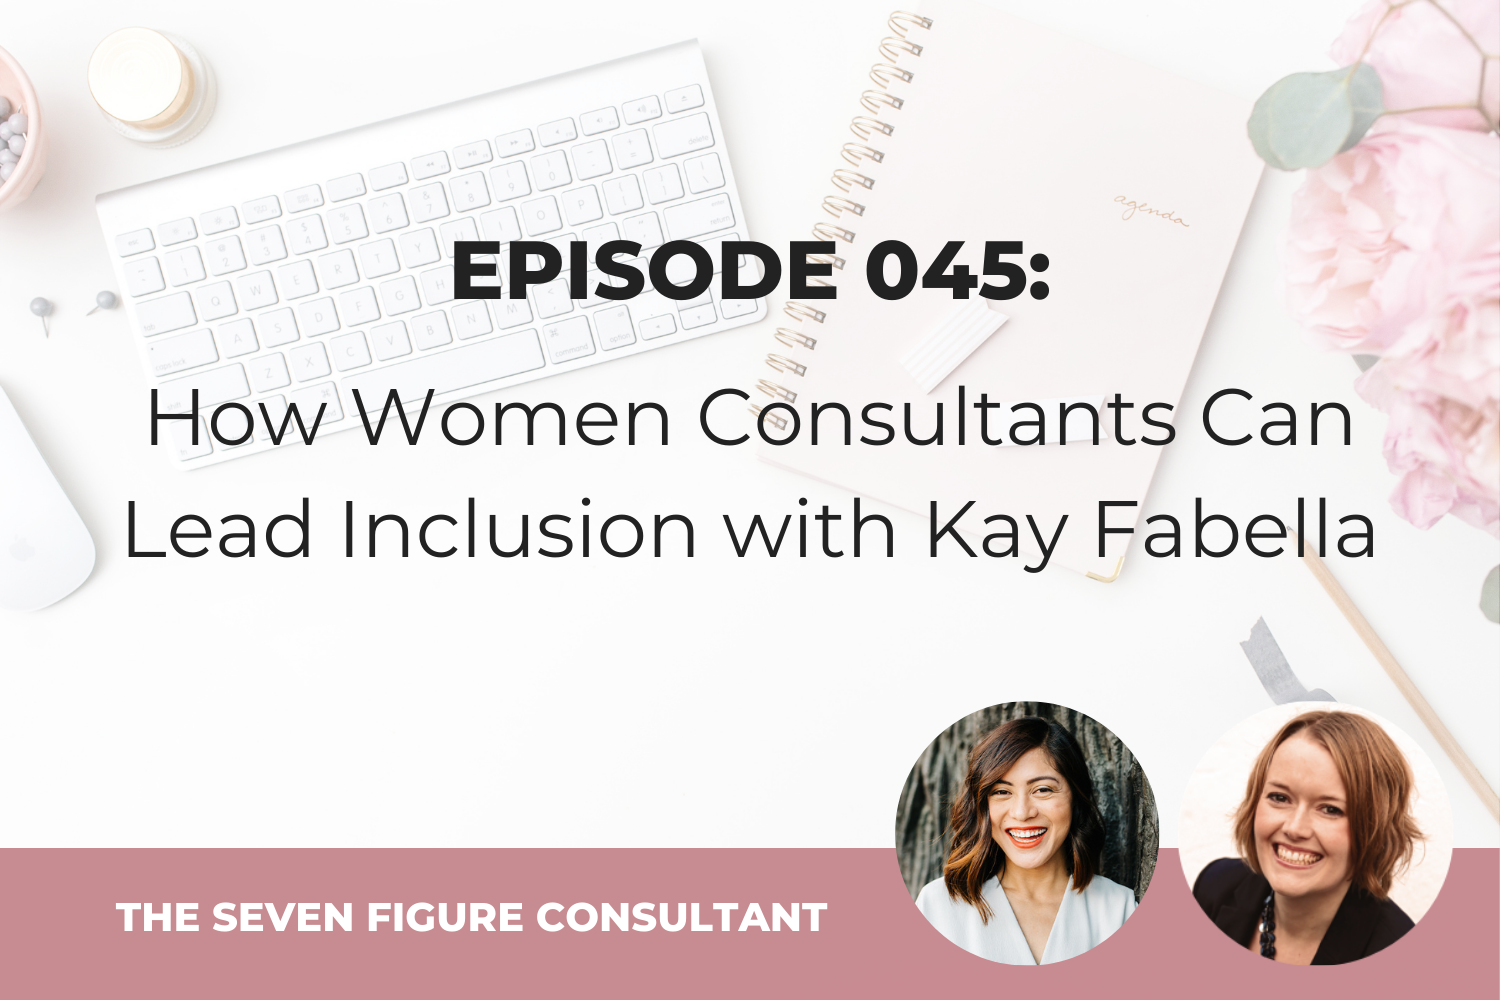 Episode 045: How Women Consultants Can Lead Inclusion with Kay Fabella